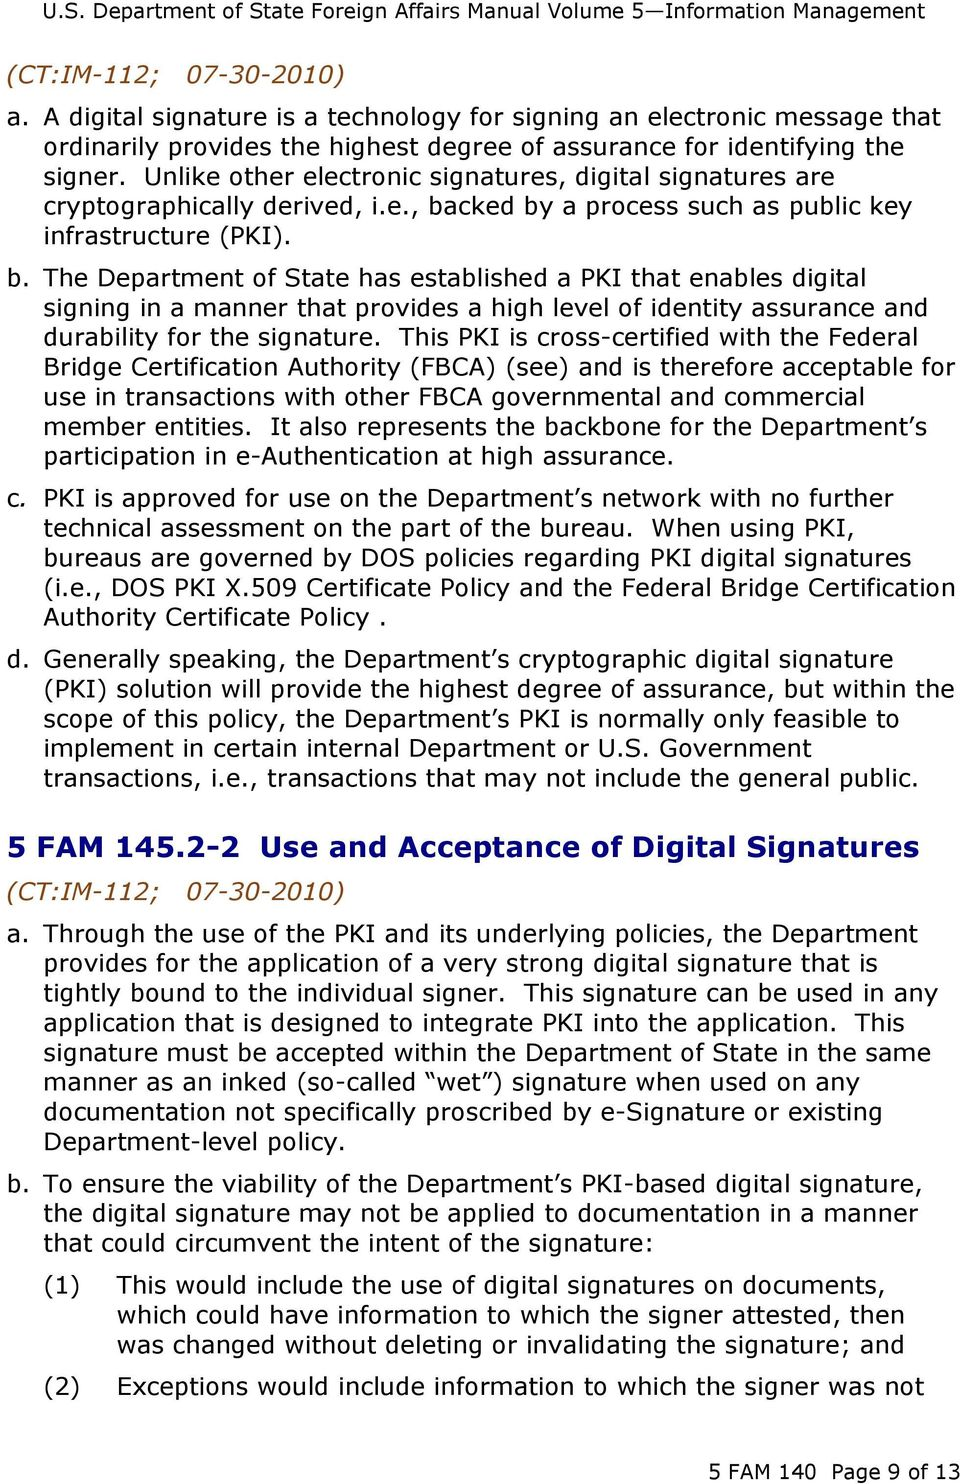 cked by a process such as public key infrastructure (PKI). b. The Department of State has established a PKI that enables digital signing in a manner that provides a high level of identity assurance and durability for the signature.